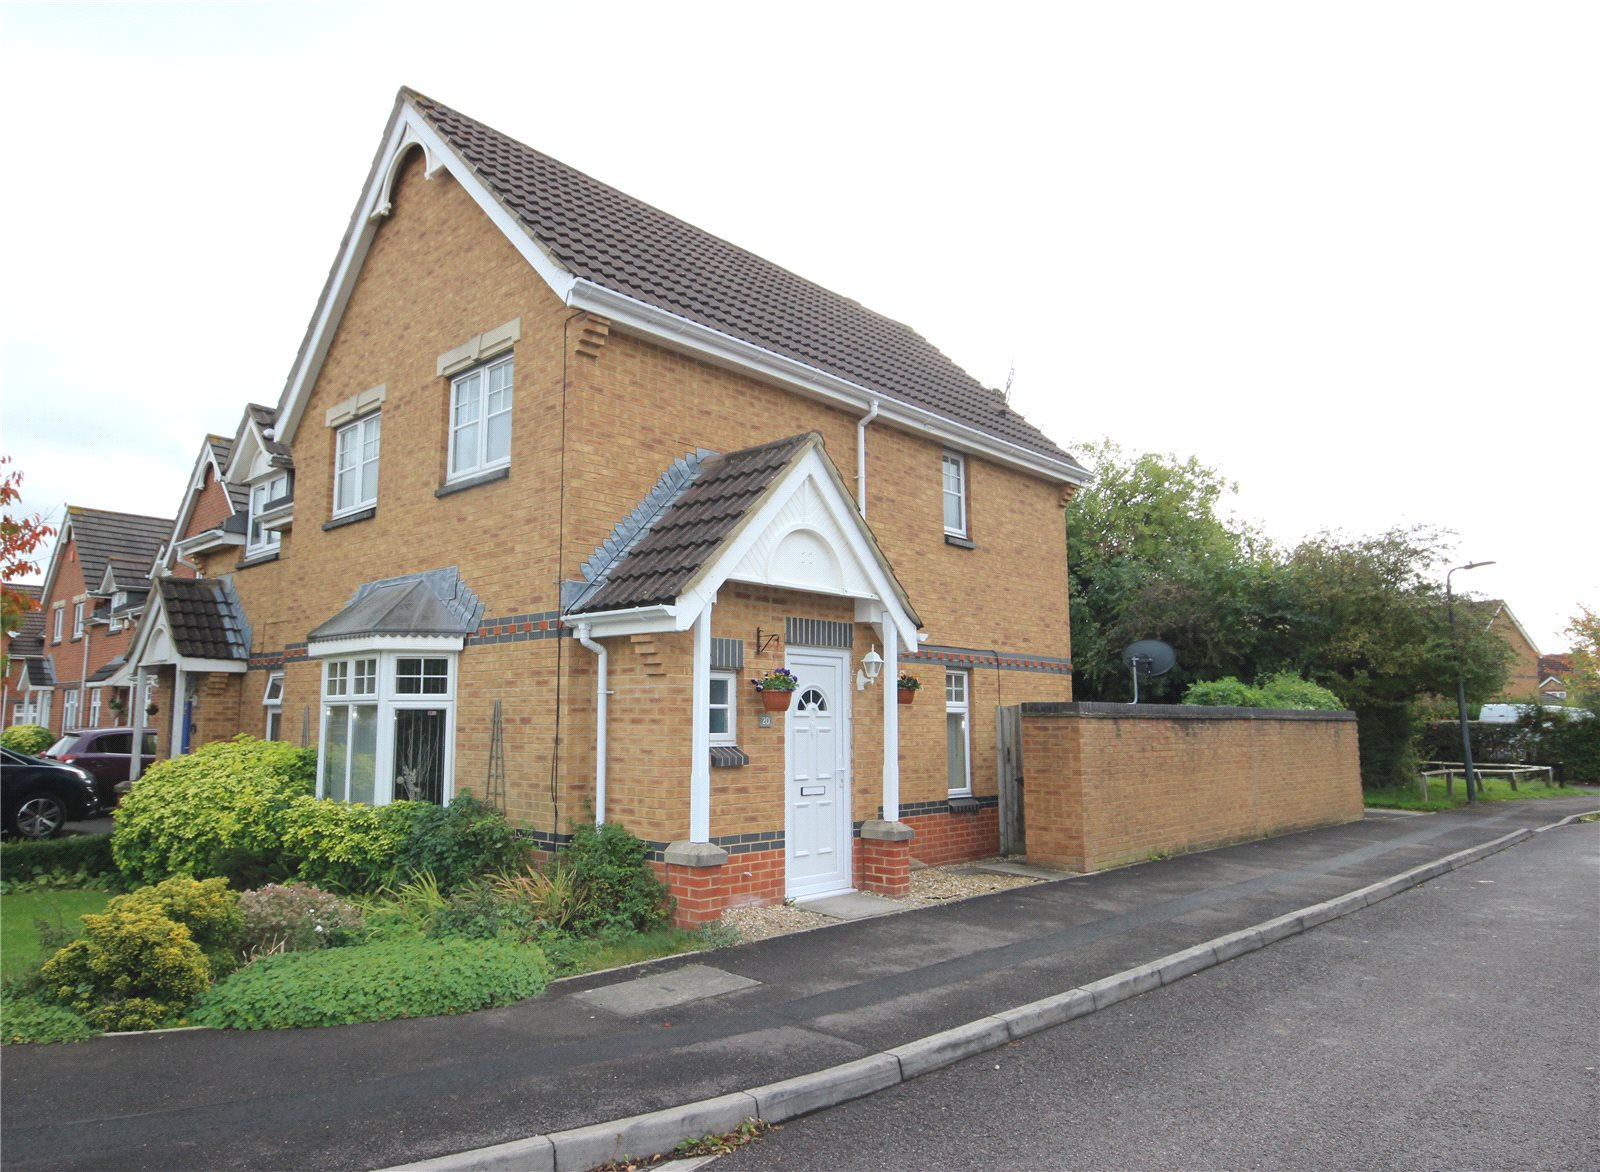 3 Bedrooms Semi Detached House for sale in Lavender Way Bradley Stoke Bristol BS32